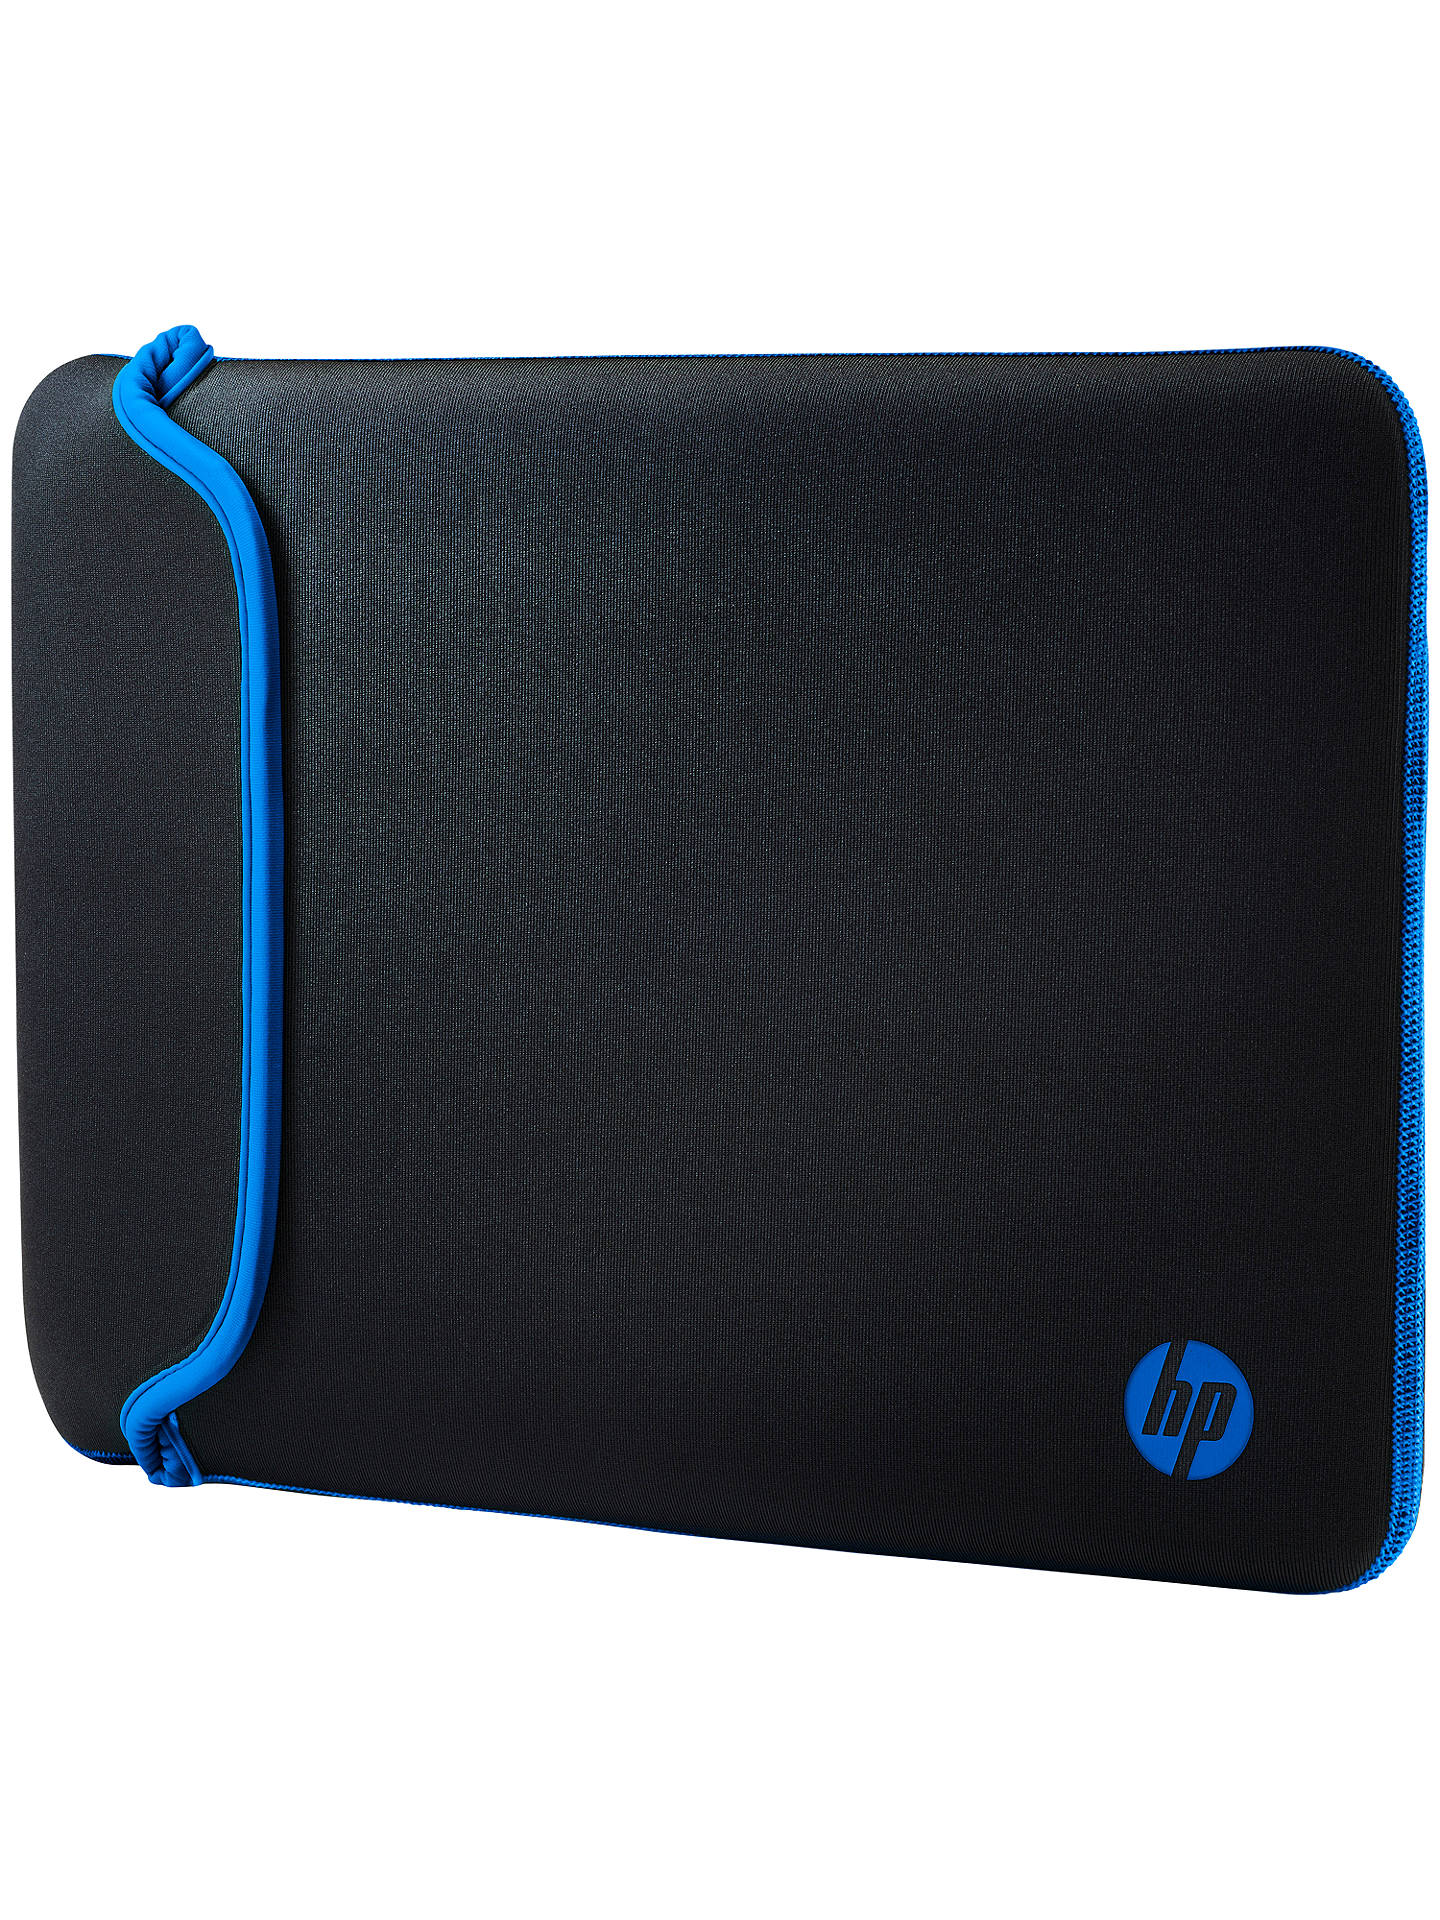 d839e694dee0 HP Neoprene Laptop Sleeve, 14